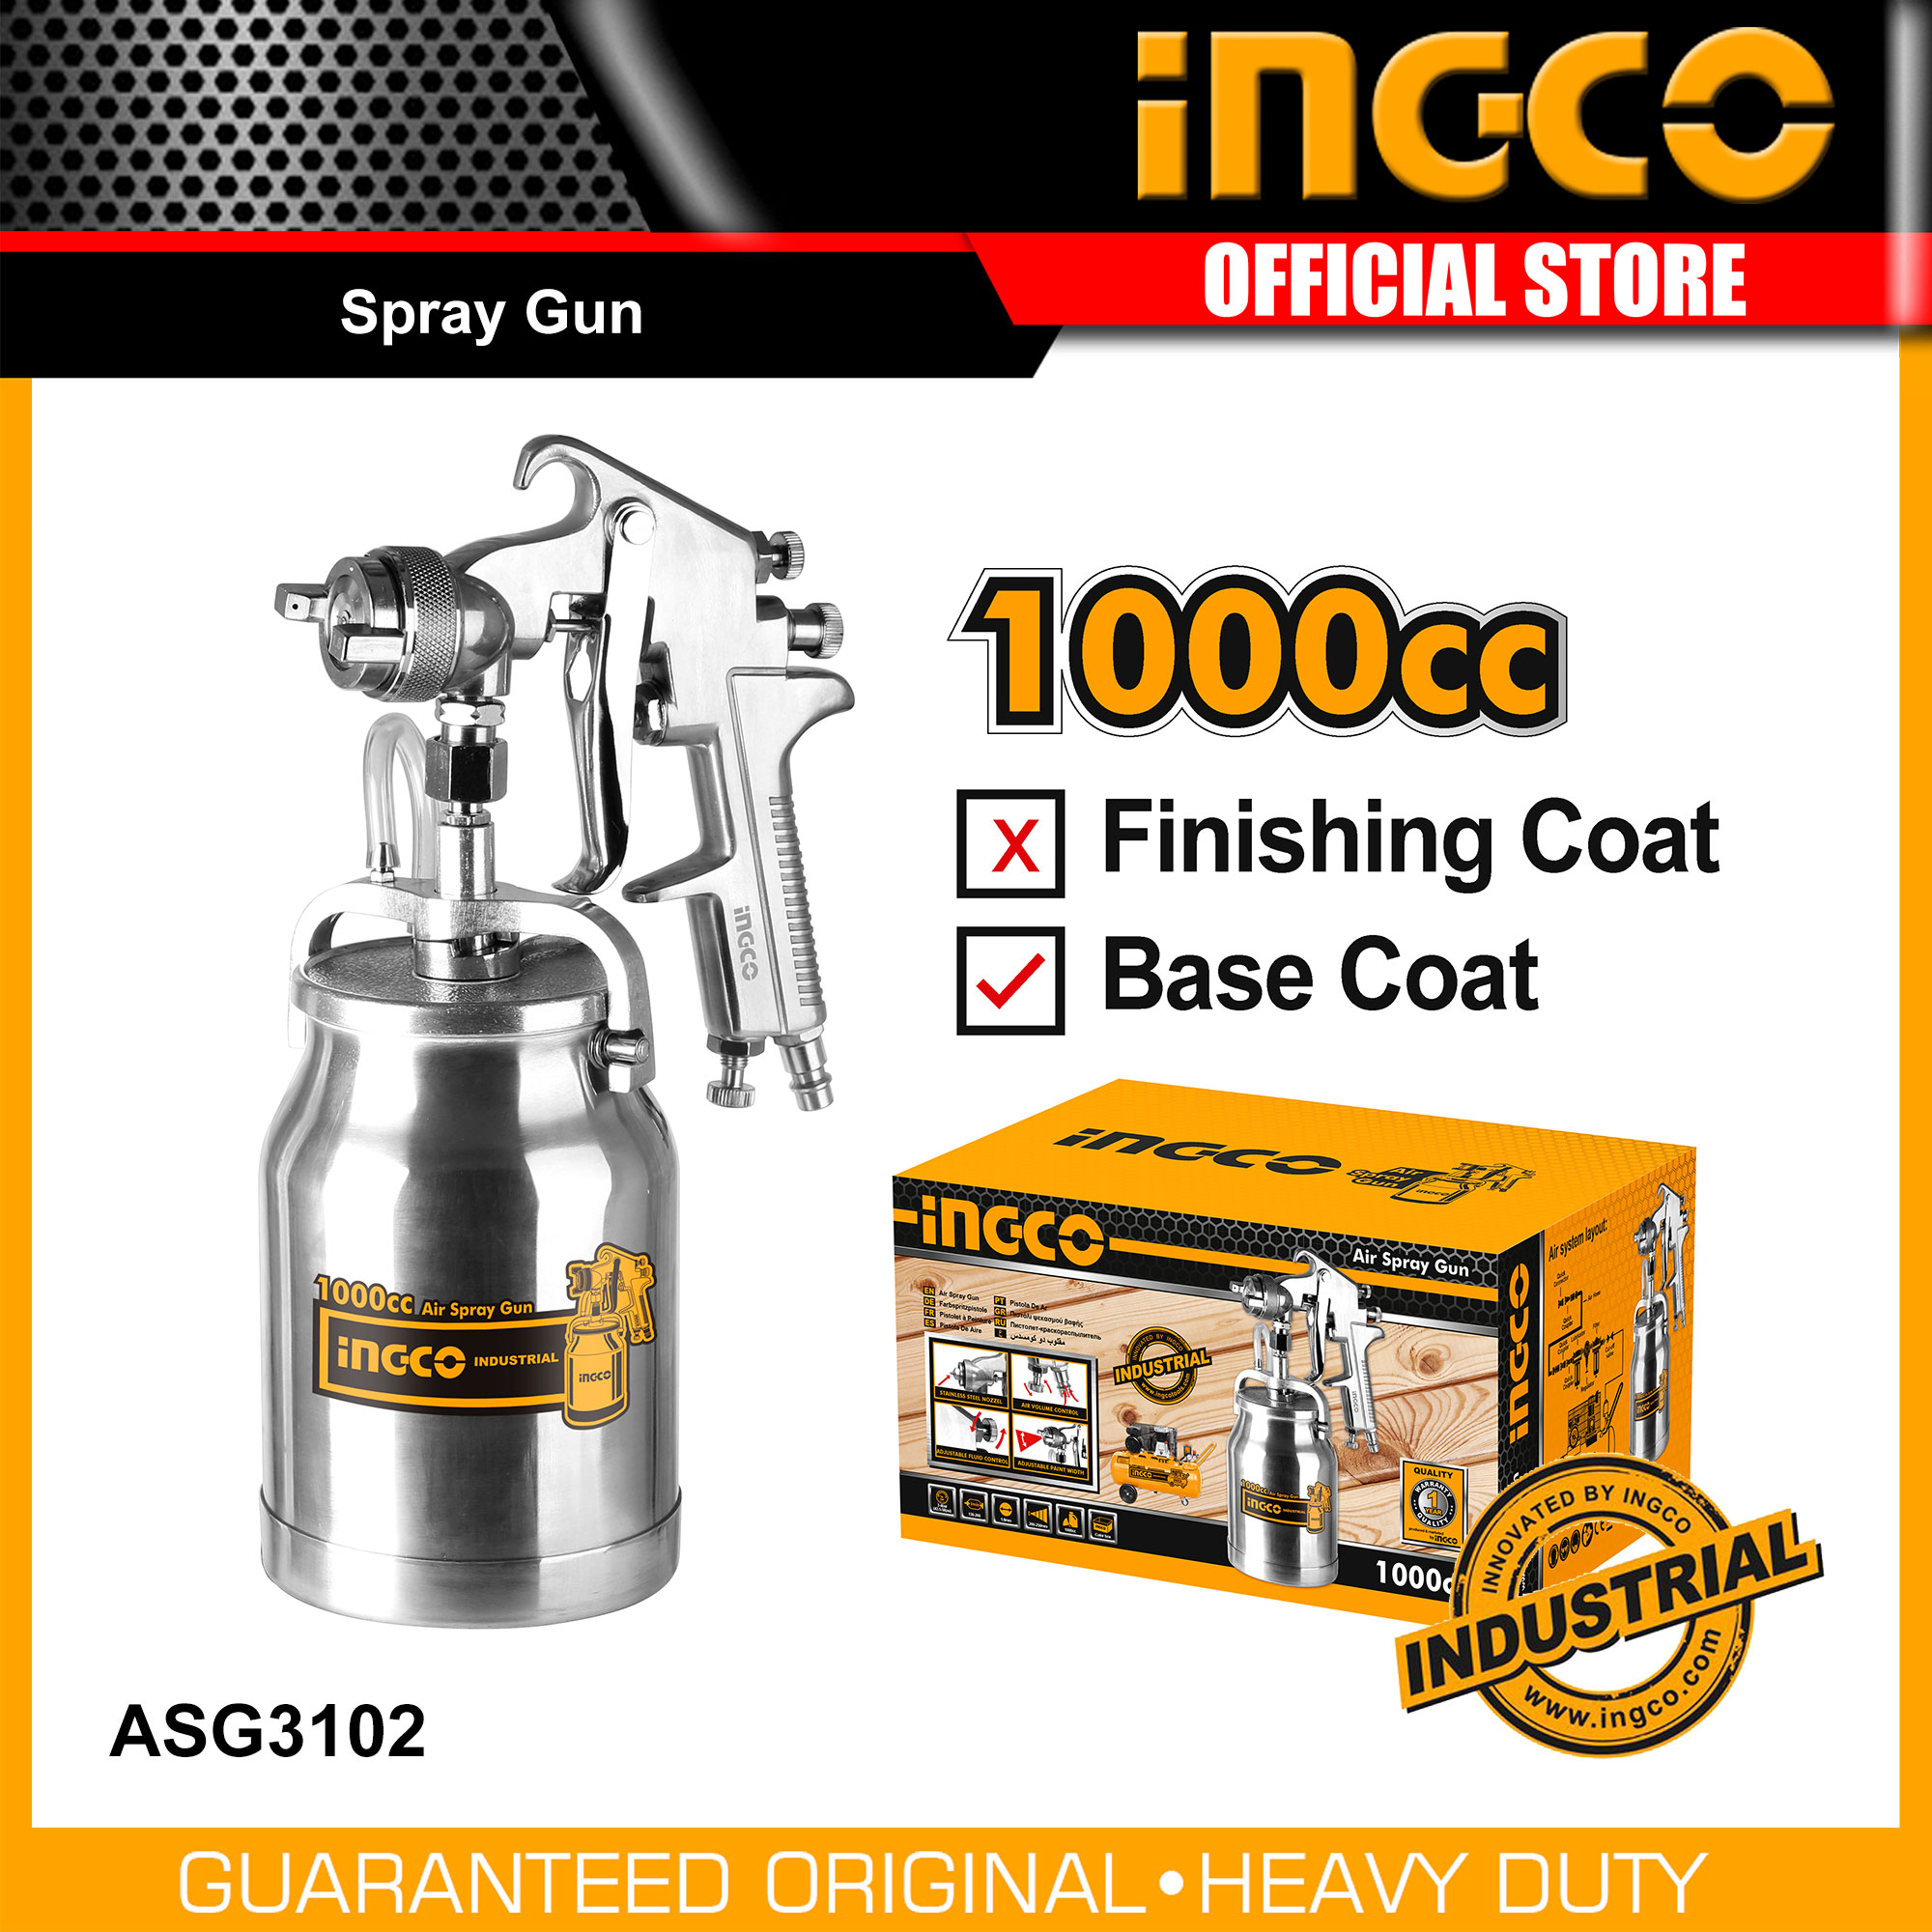 Ingco Asg3102 1000cc Spray Gun Buy Sell Online Paint Tools